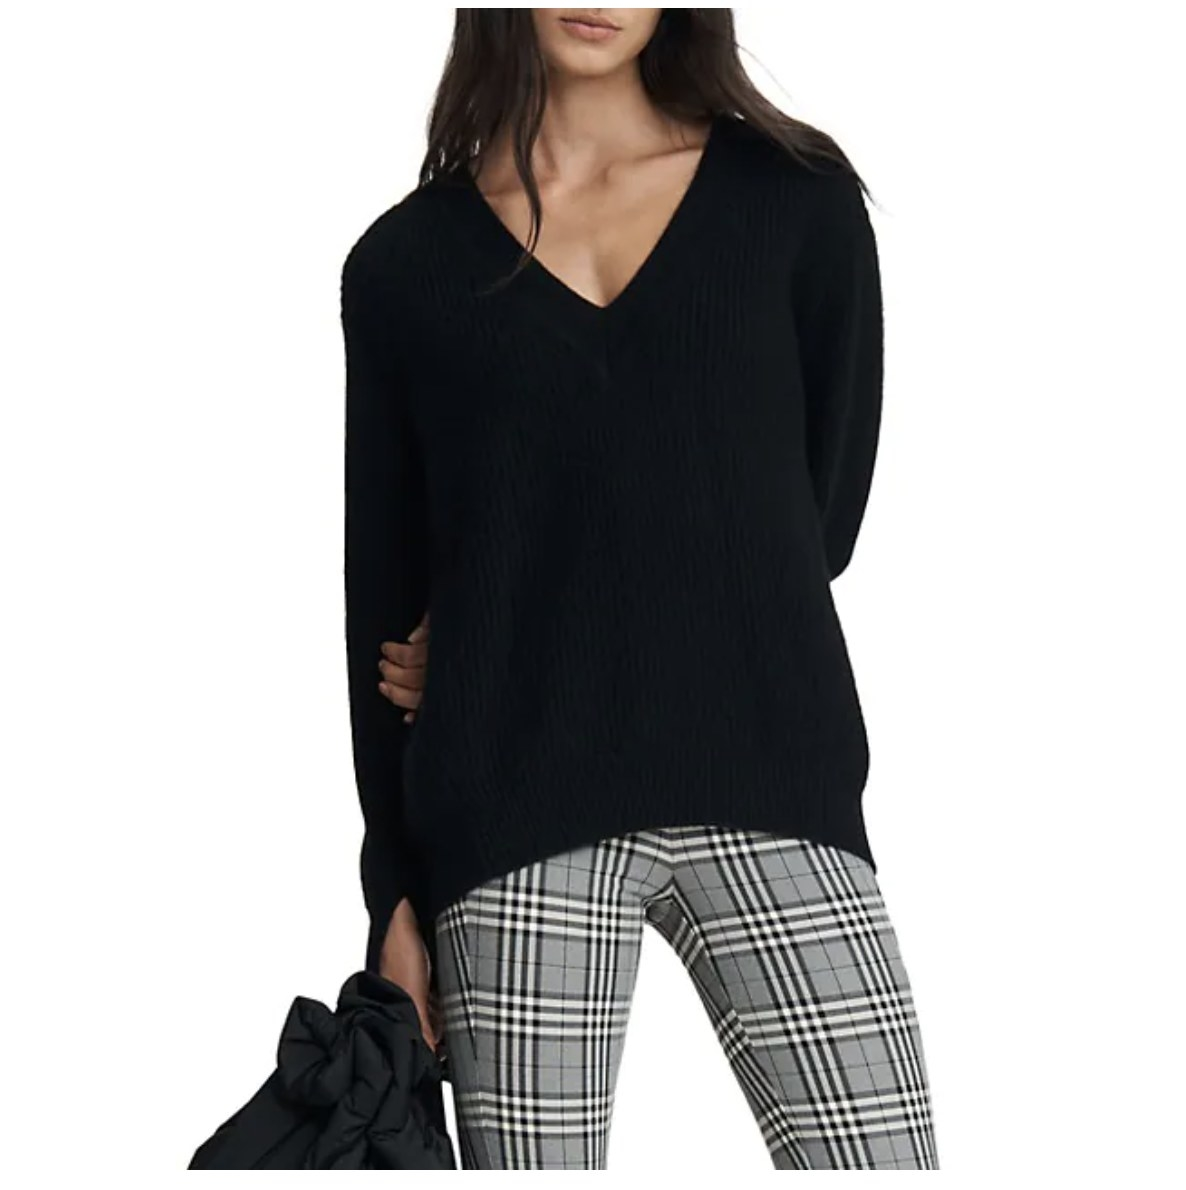 the sweater in black on a model with plaid pants